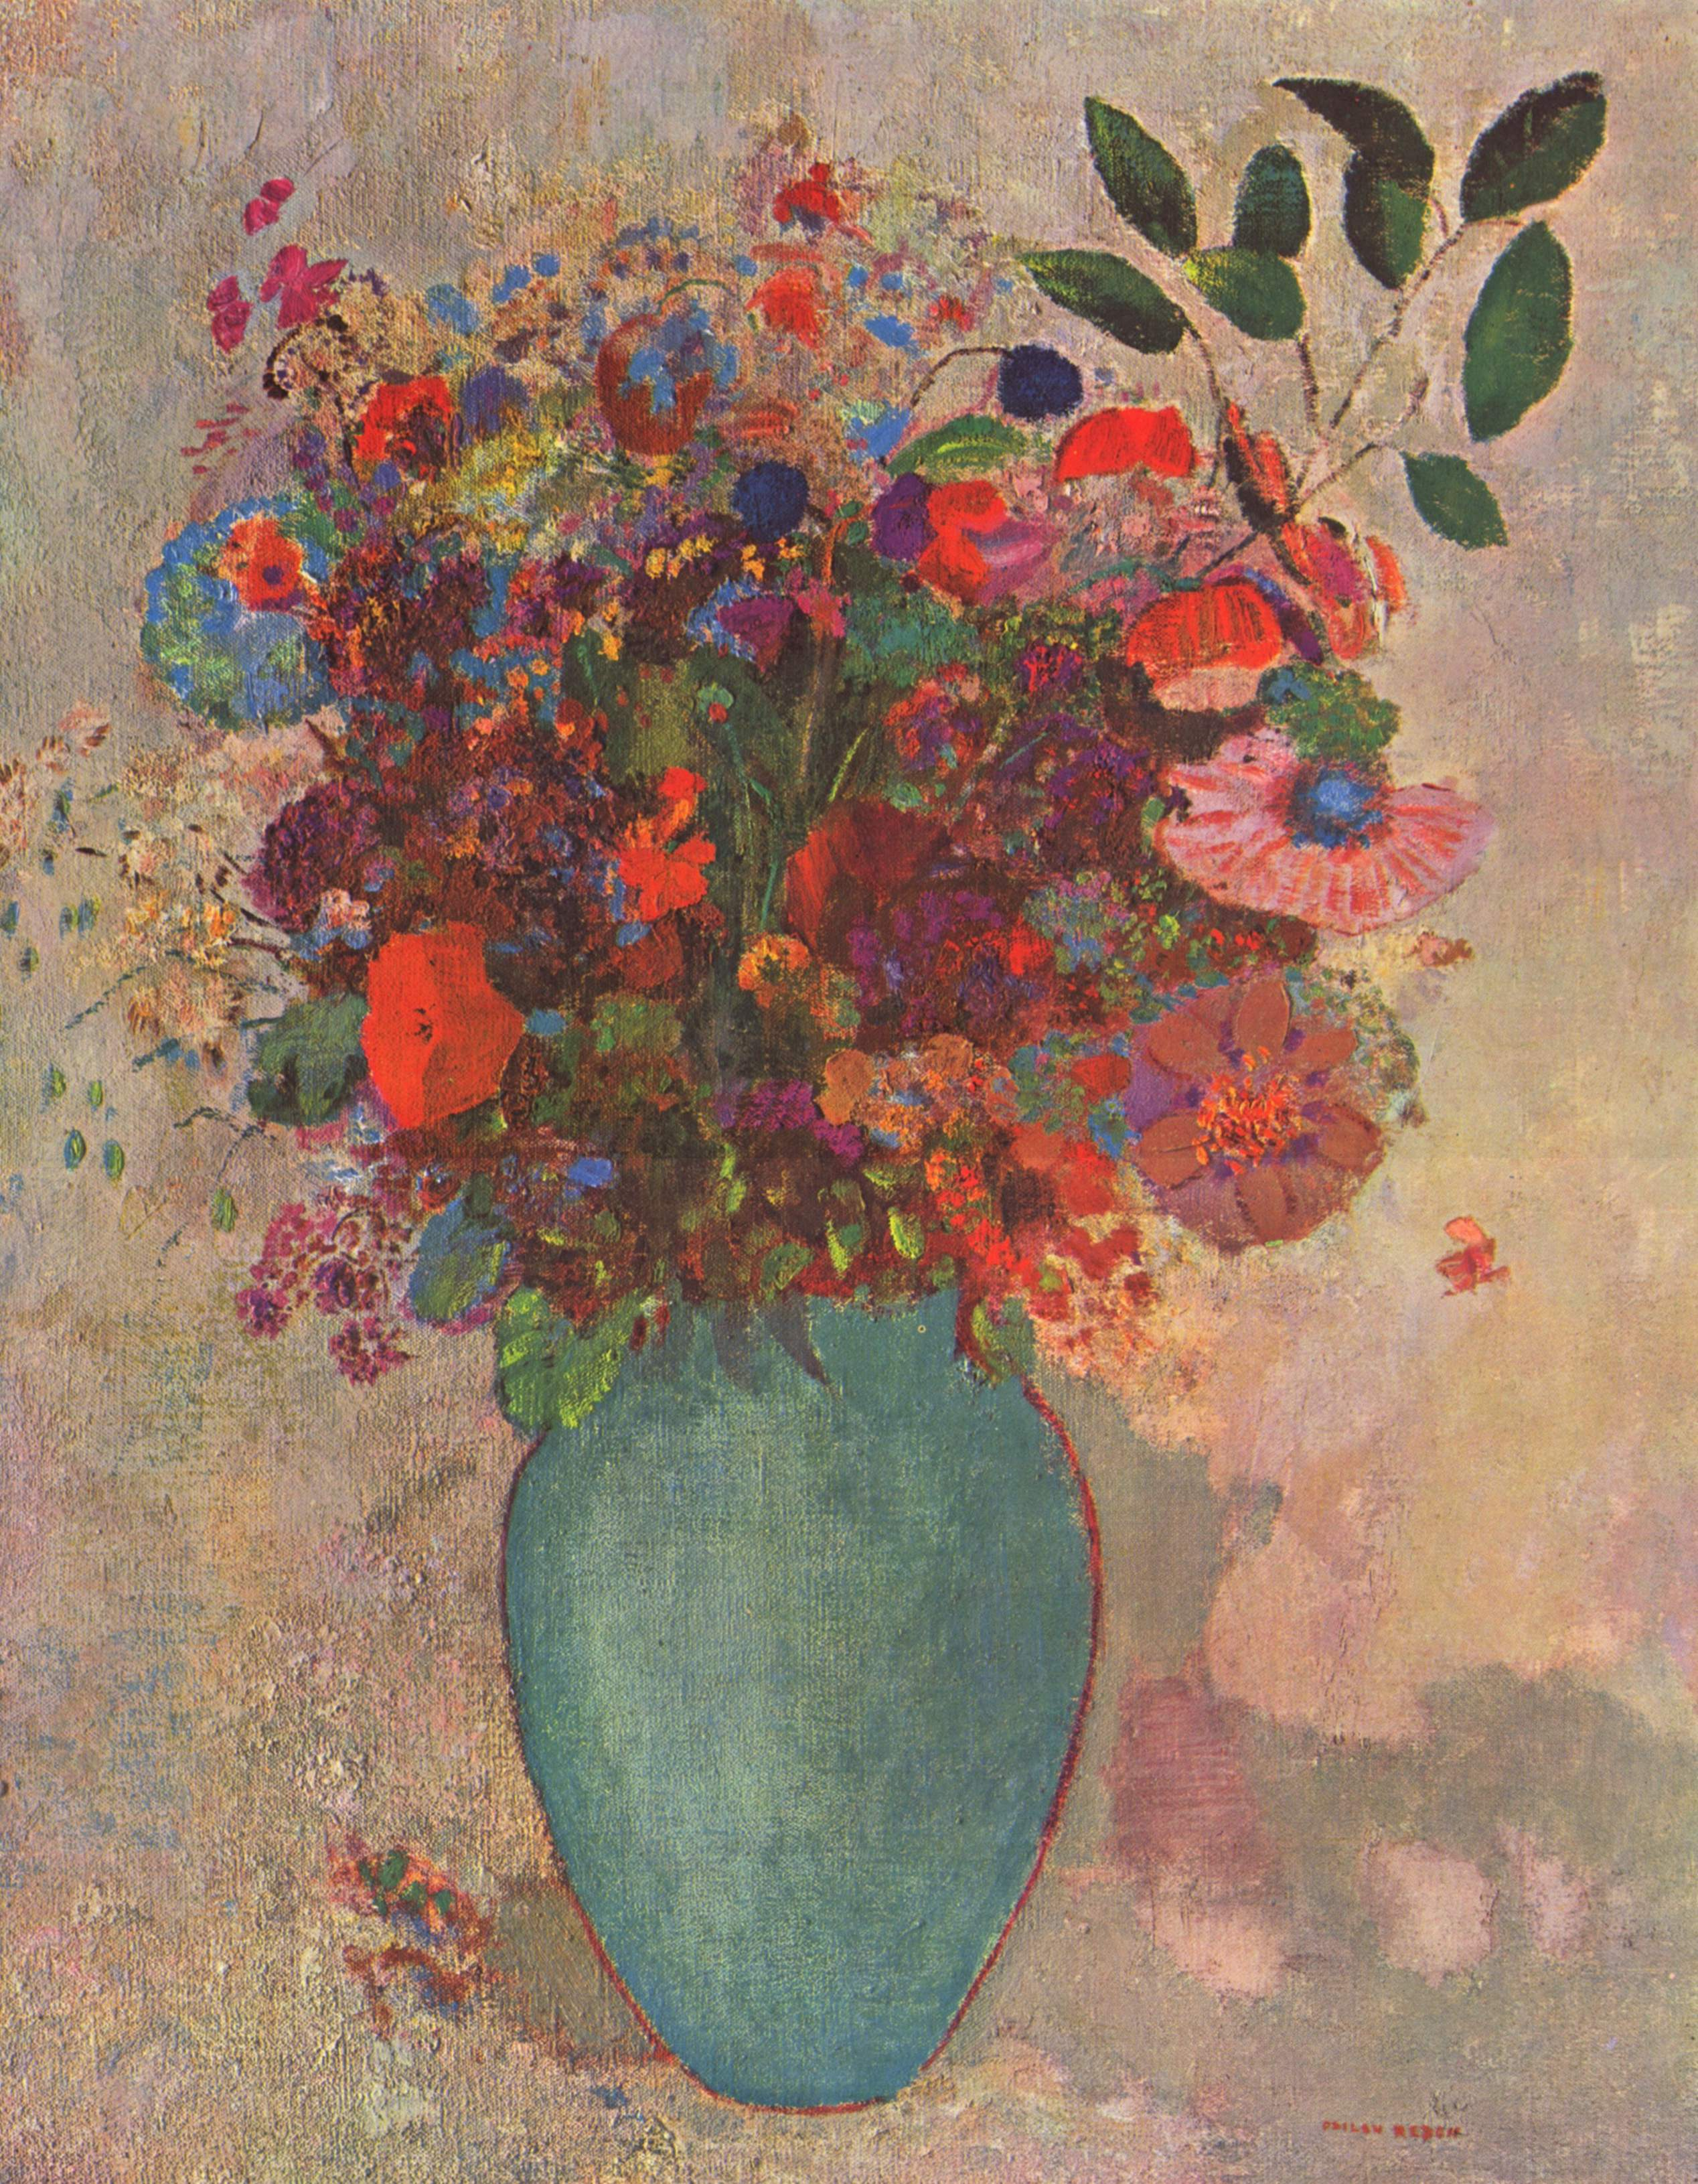 The Turquoise Vase by Odilon Redon